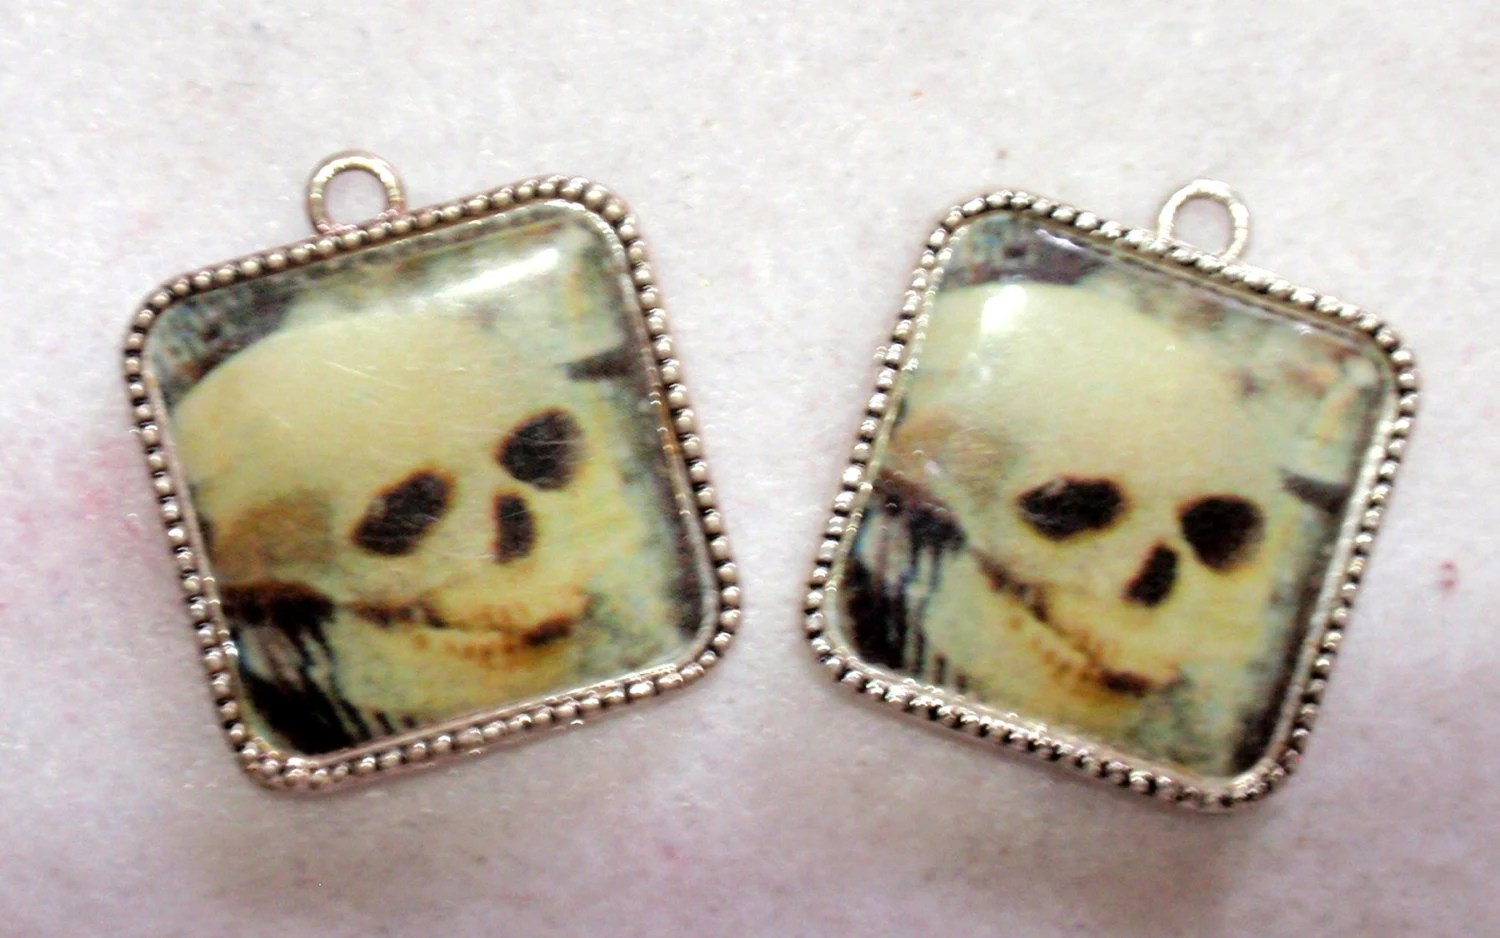 Vintage Skull Photo Charms Square Marked AAi From the Late 80s - TUTreasures